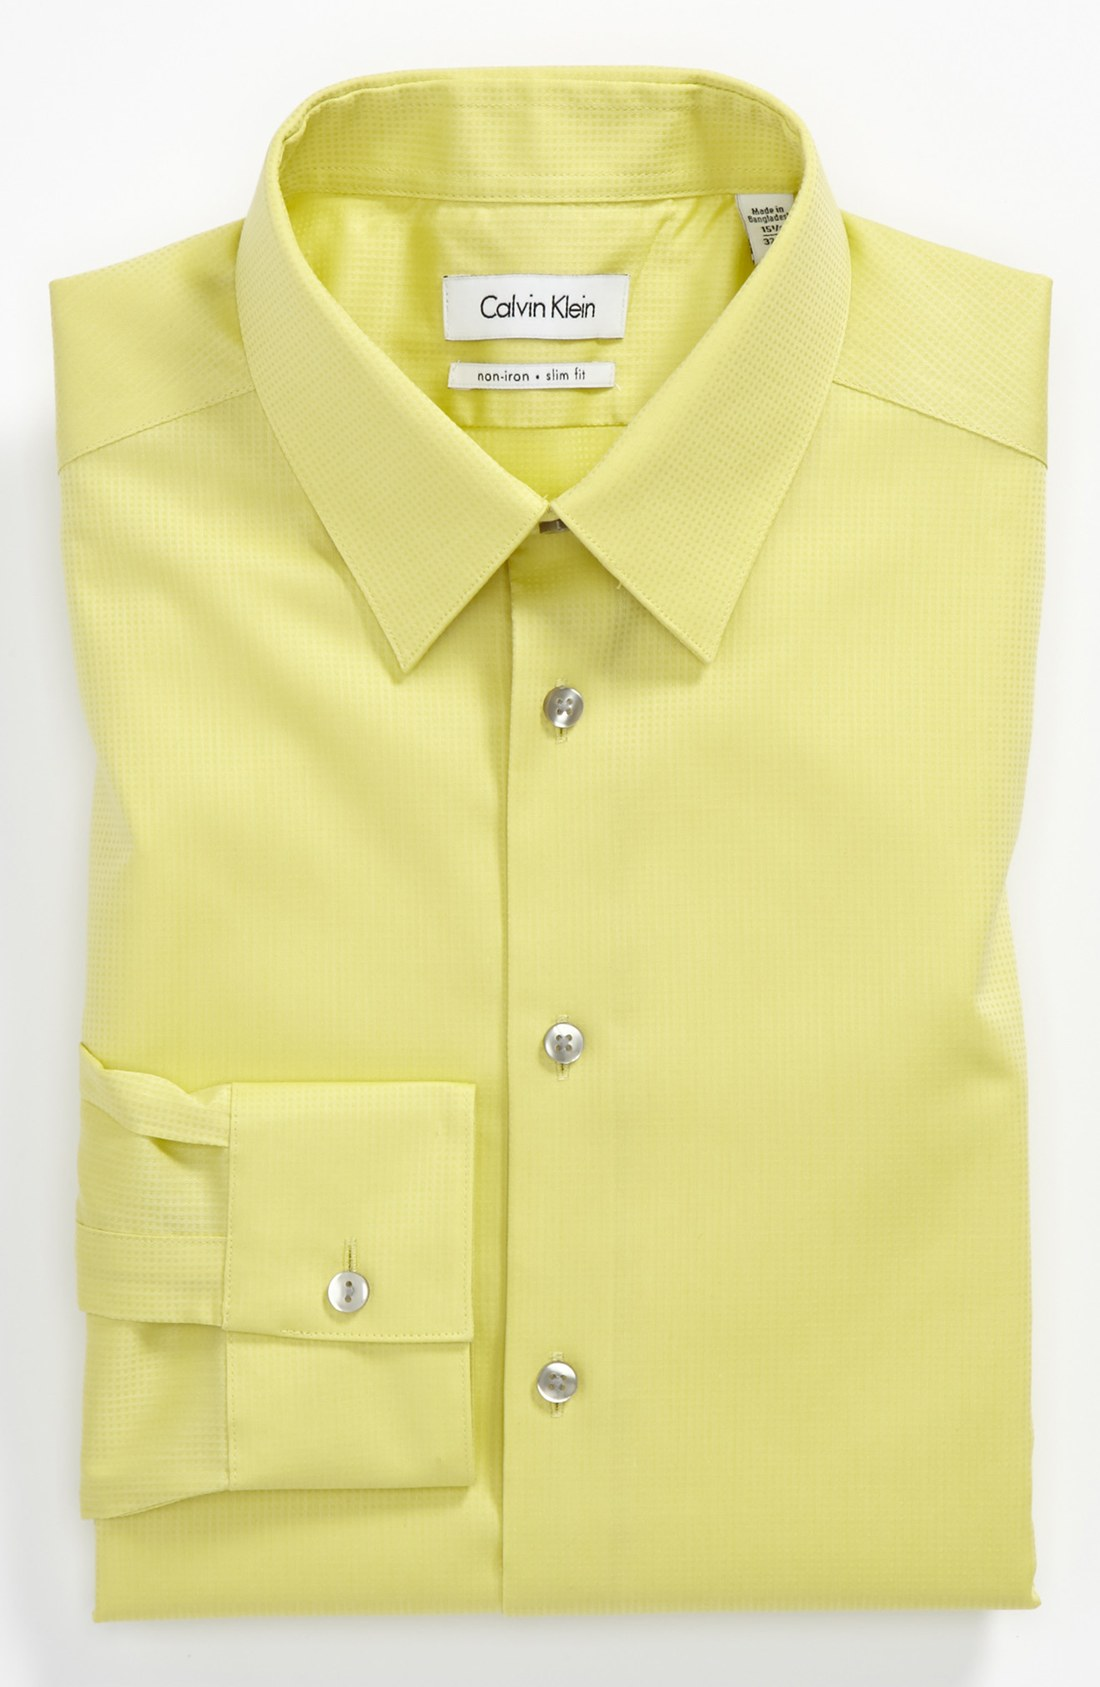 calvin klein miami check slim fit dress shirt in yellow